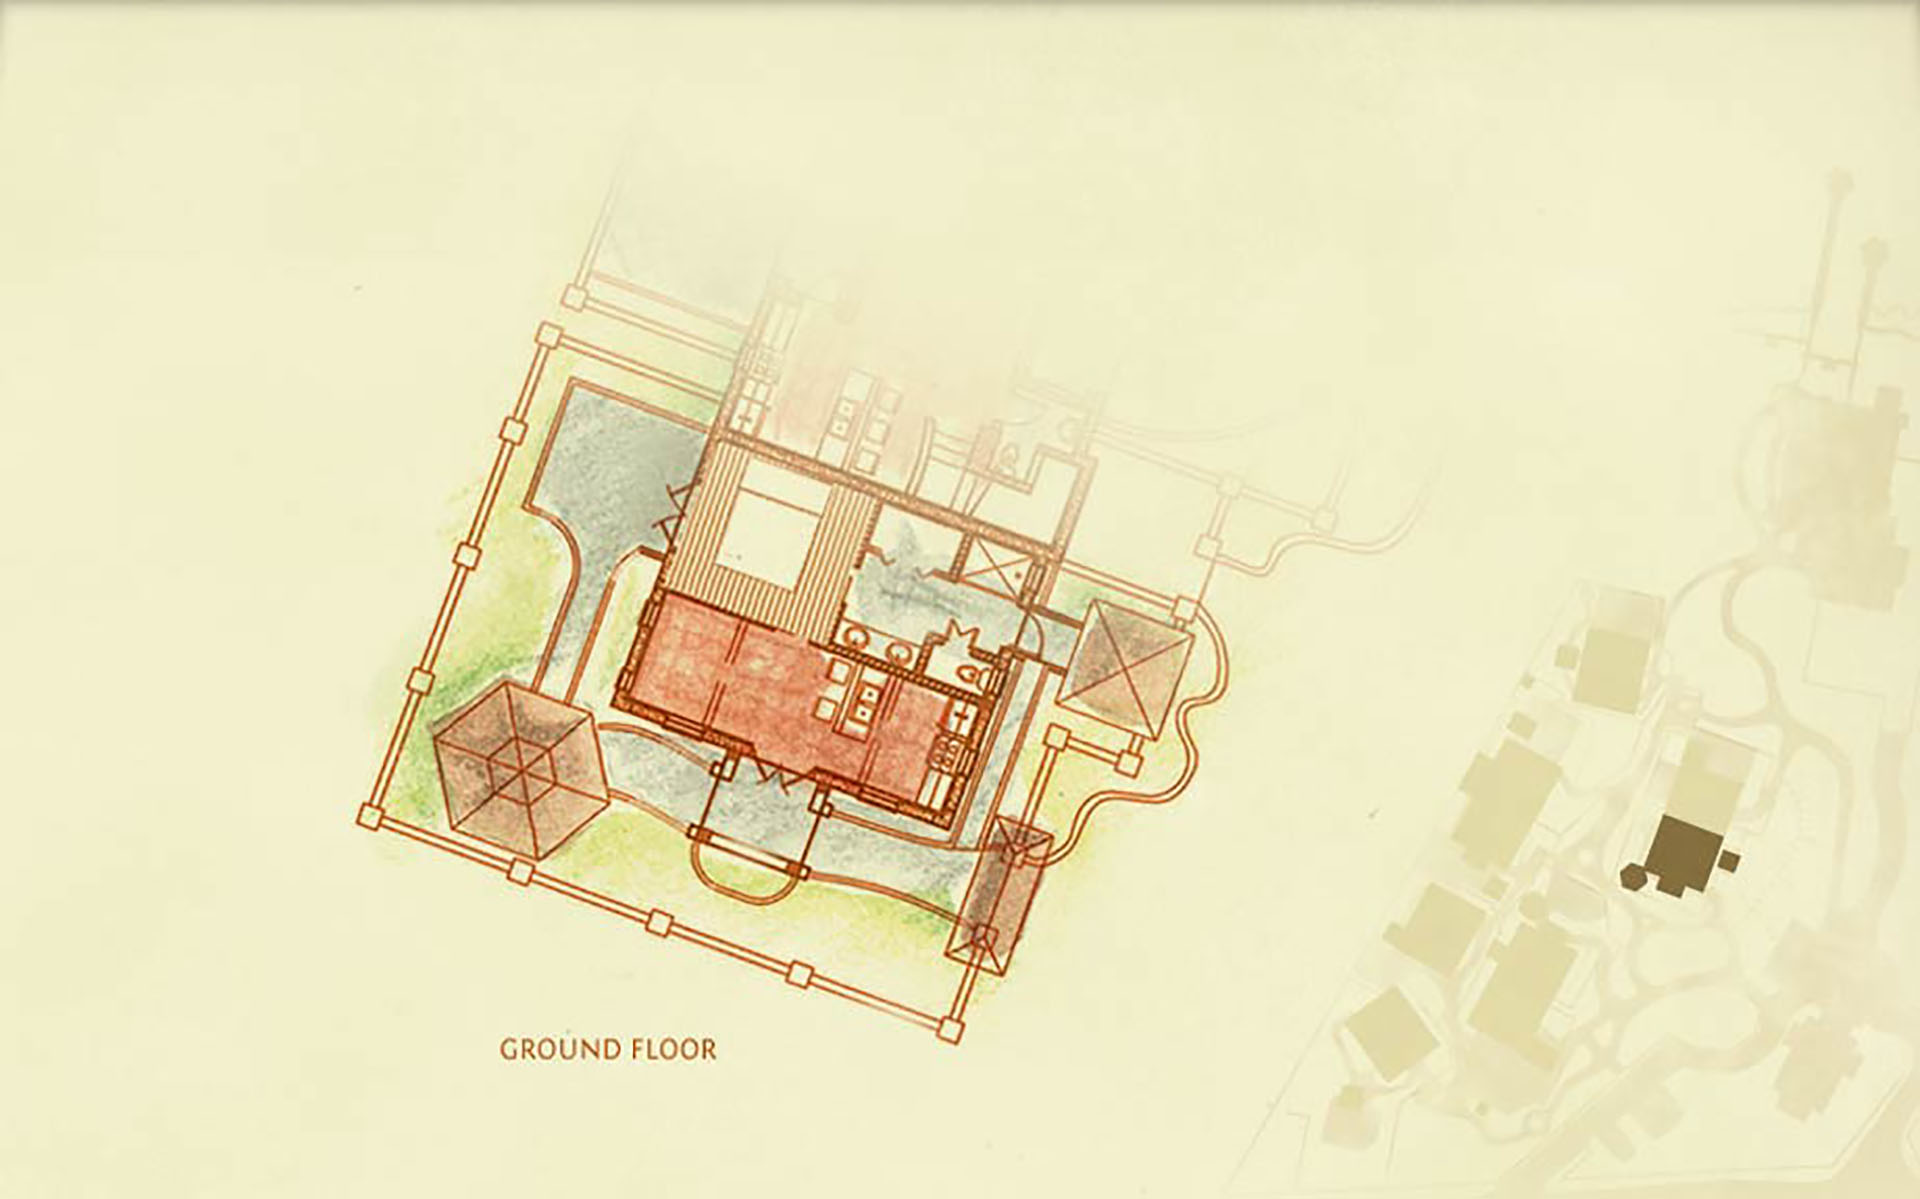 Coconut ground plan